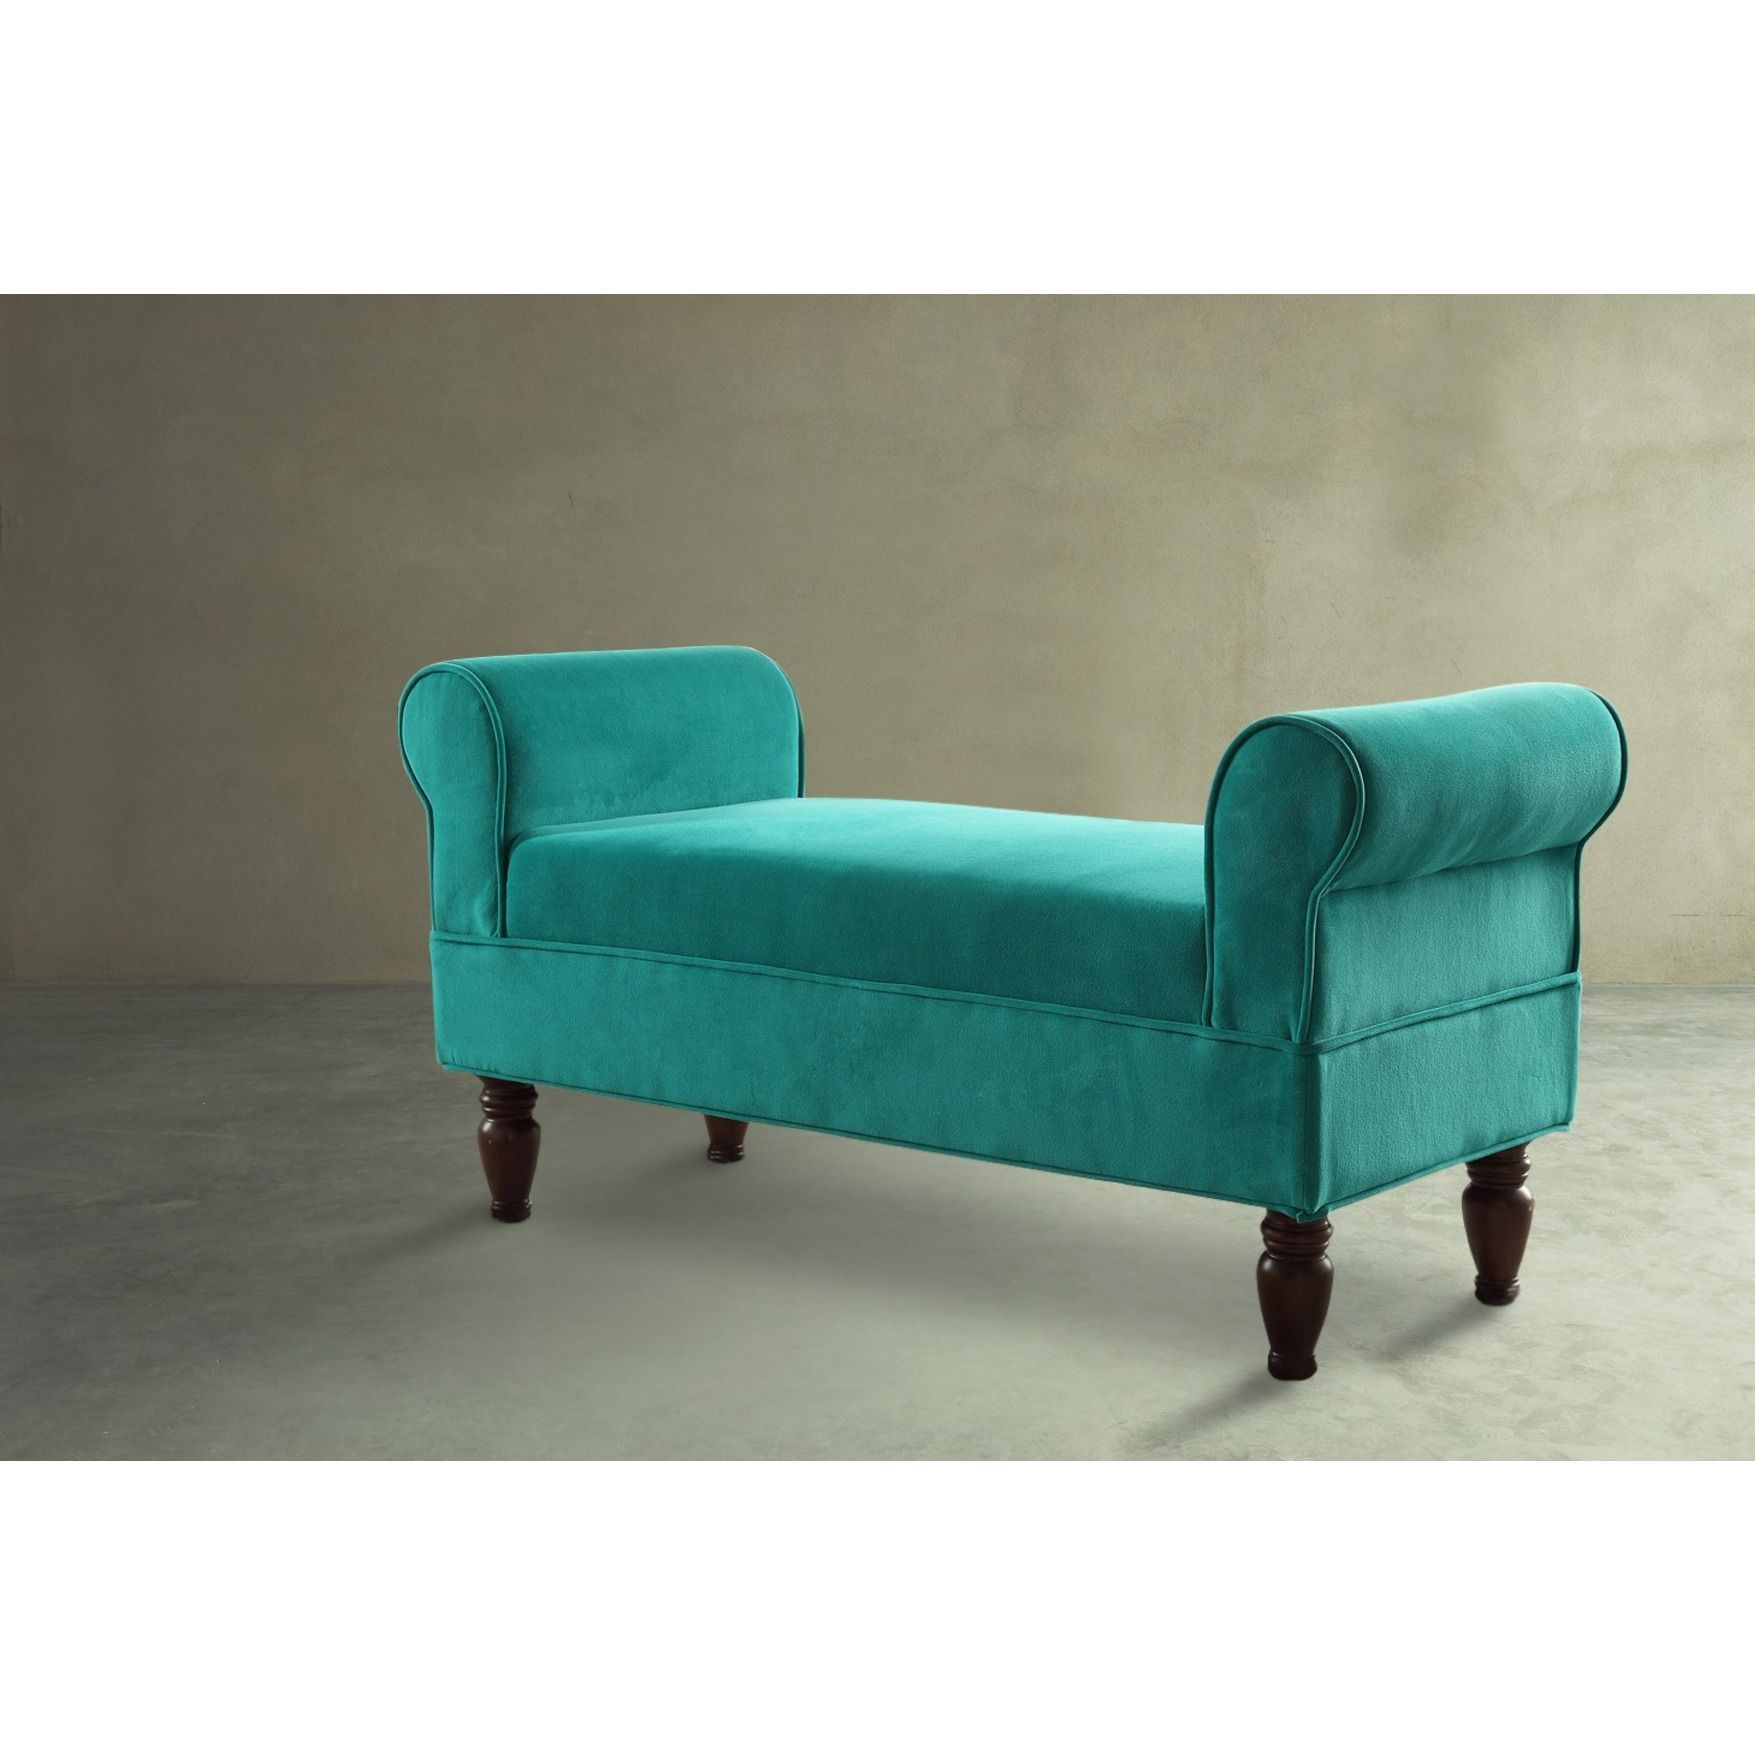 Linon Justine Classic Bench In Emerald Microfiber (Aquamarine Bench Throughout Cohen Foam Oversized Sofa Chairs (View 23 of 25)